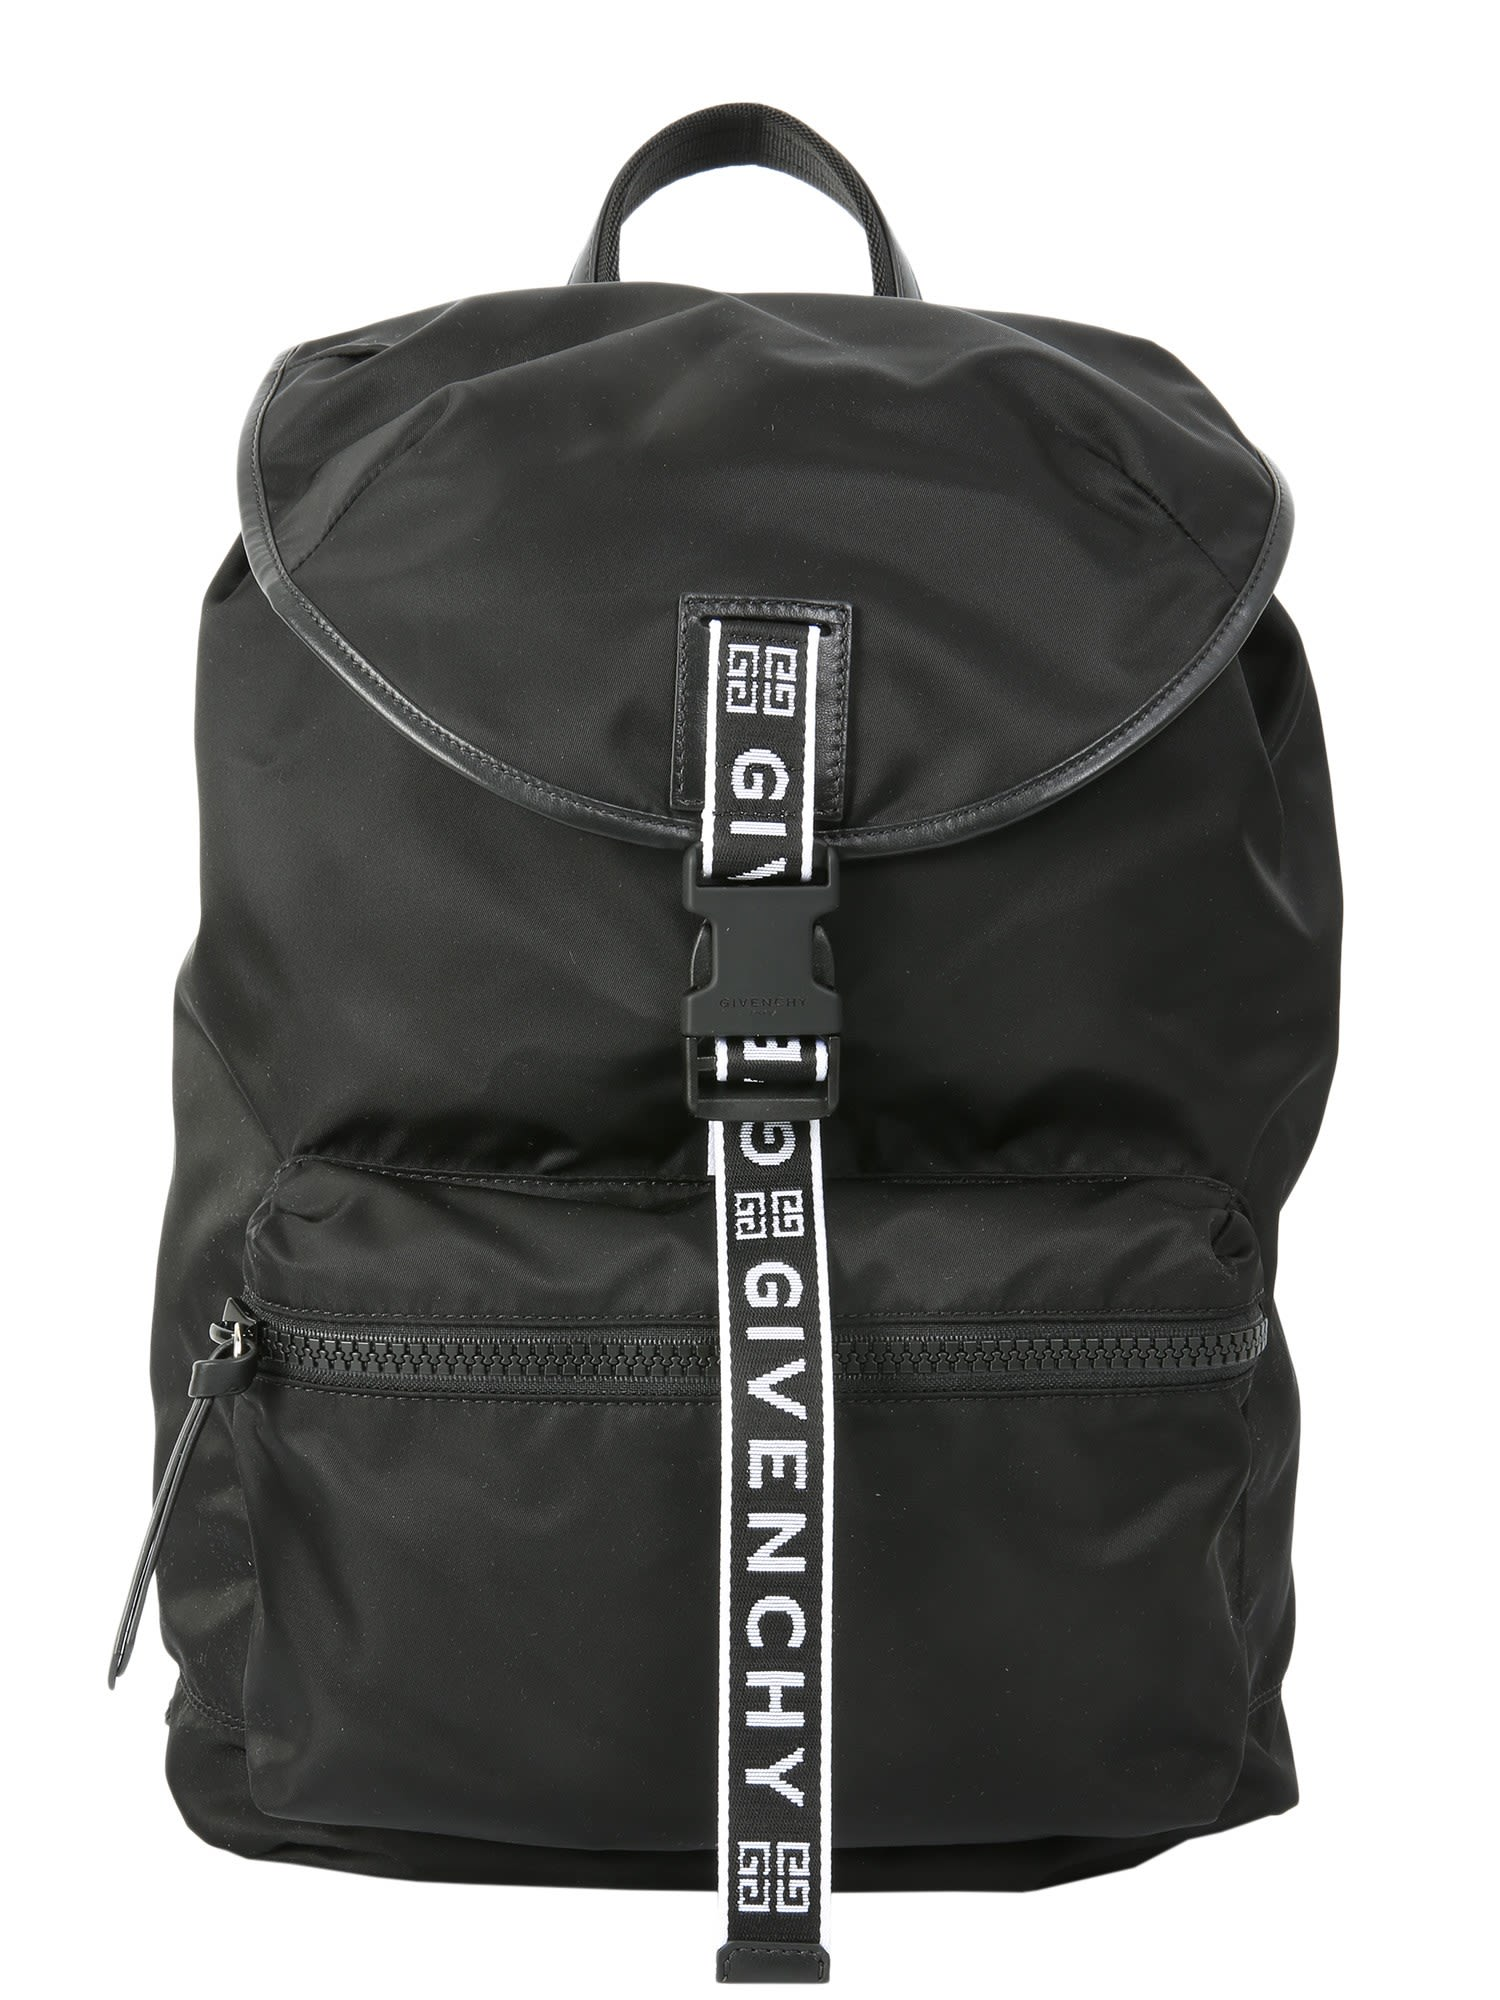 Sale 2018 New Choice Givenchy 4g Pack-away Backpack Big Sale Discount Fake SnBhzixx